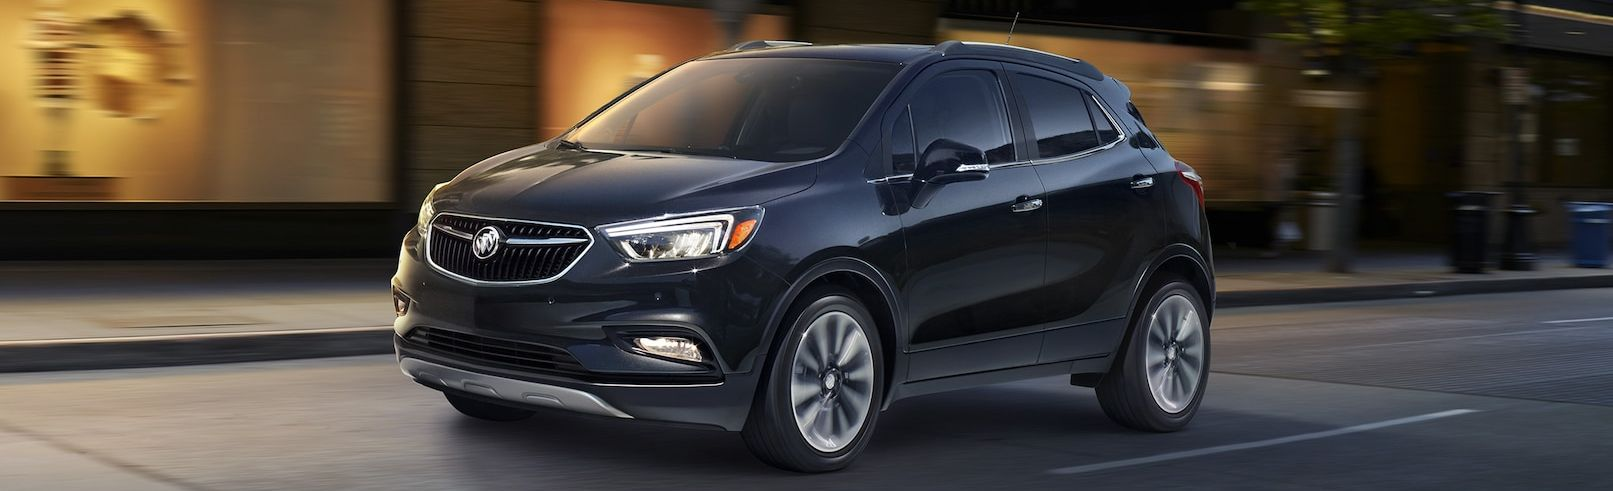 2017 Buick Encore for Sale near Lansing, MI